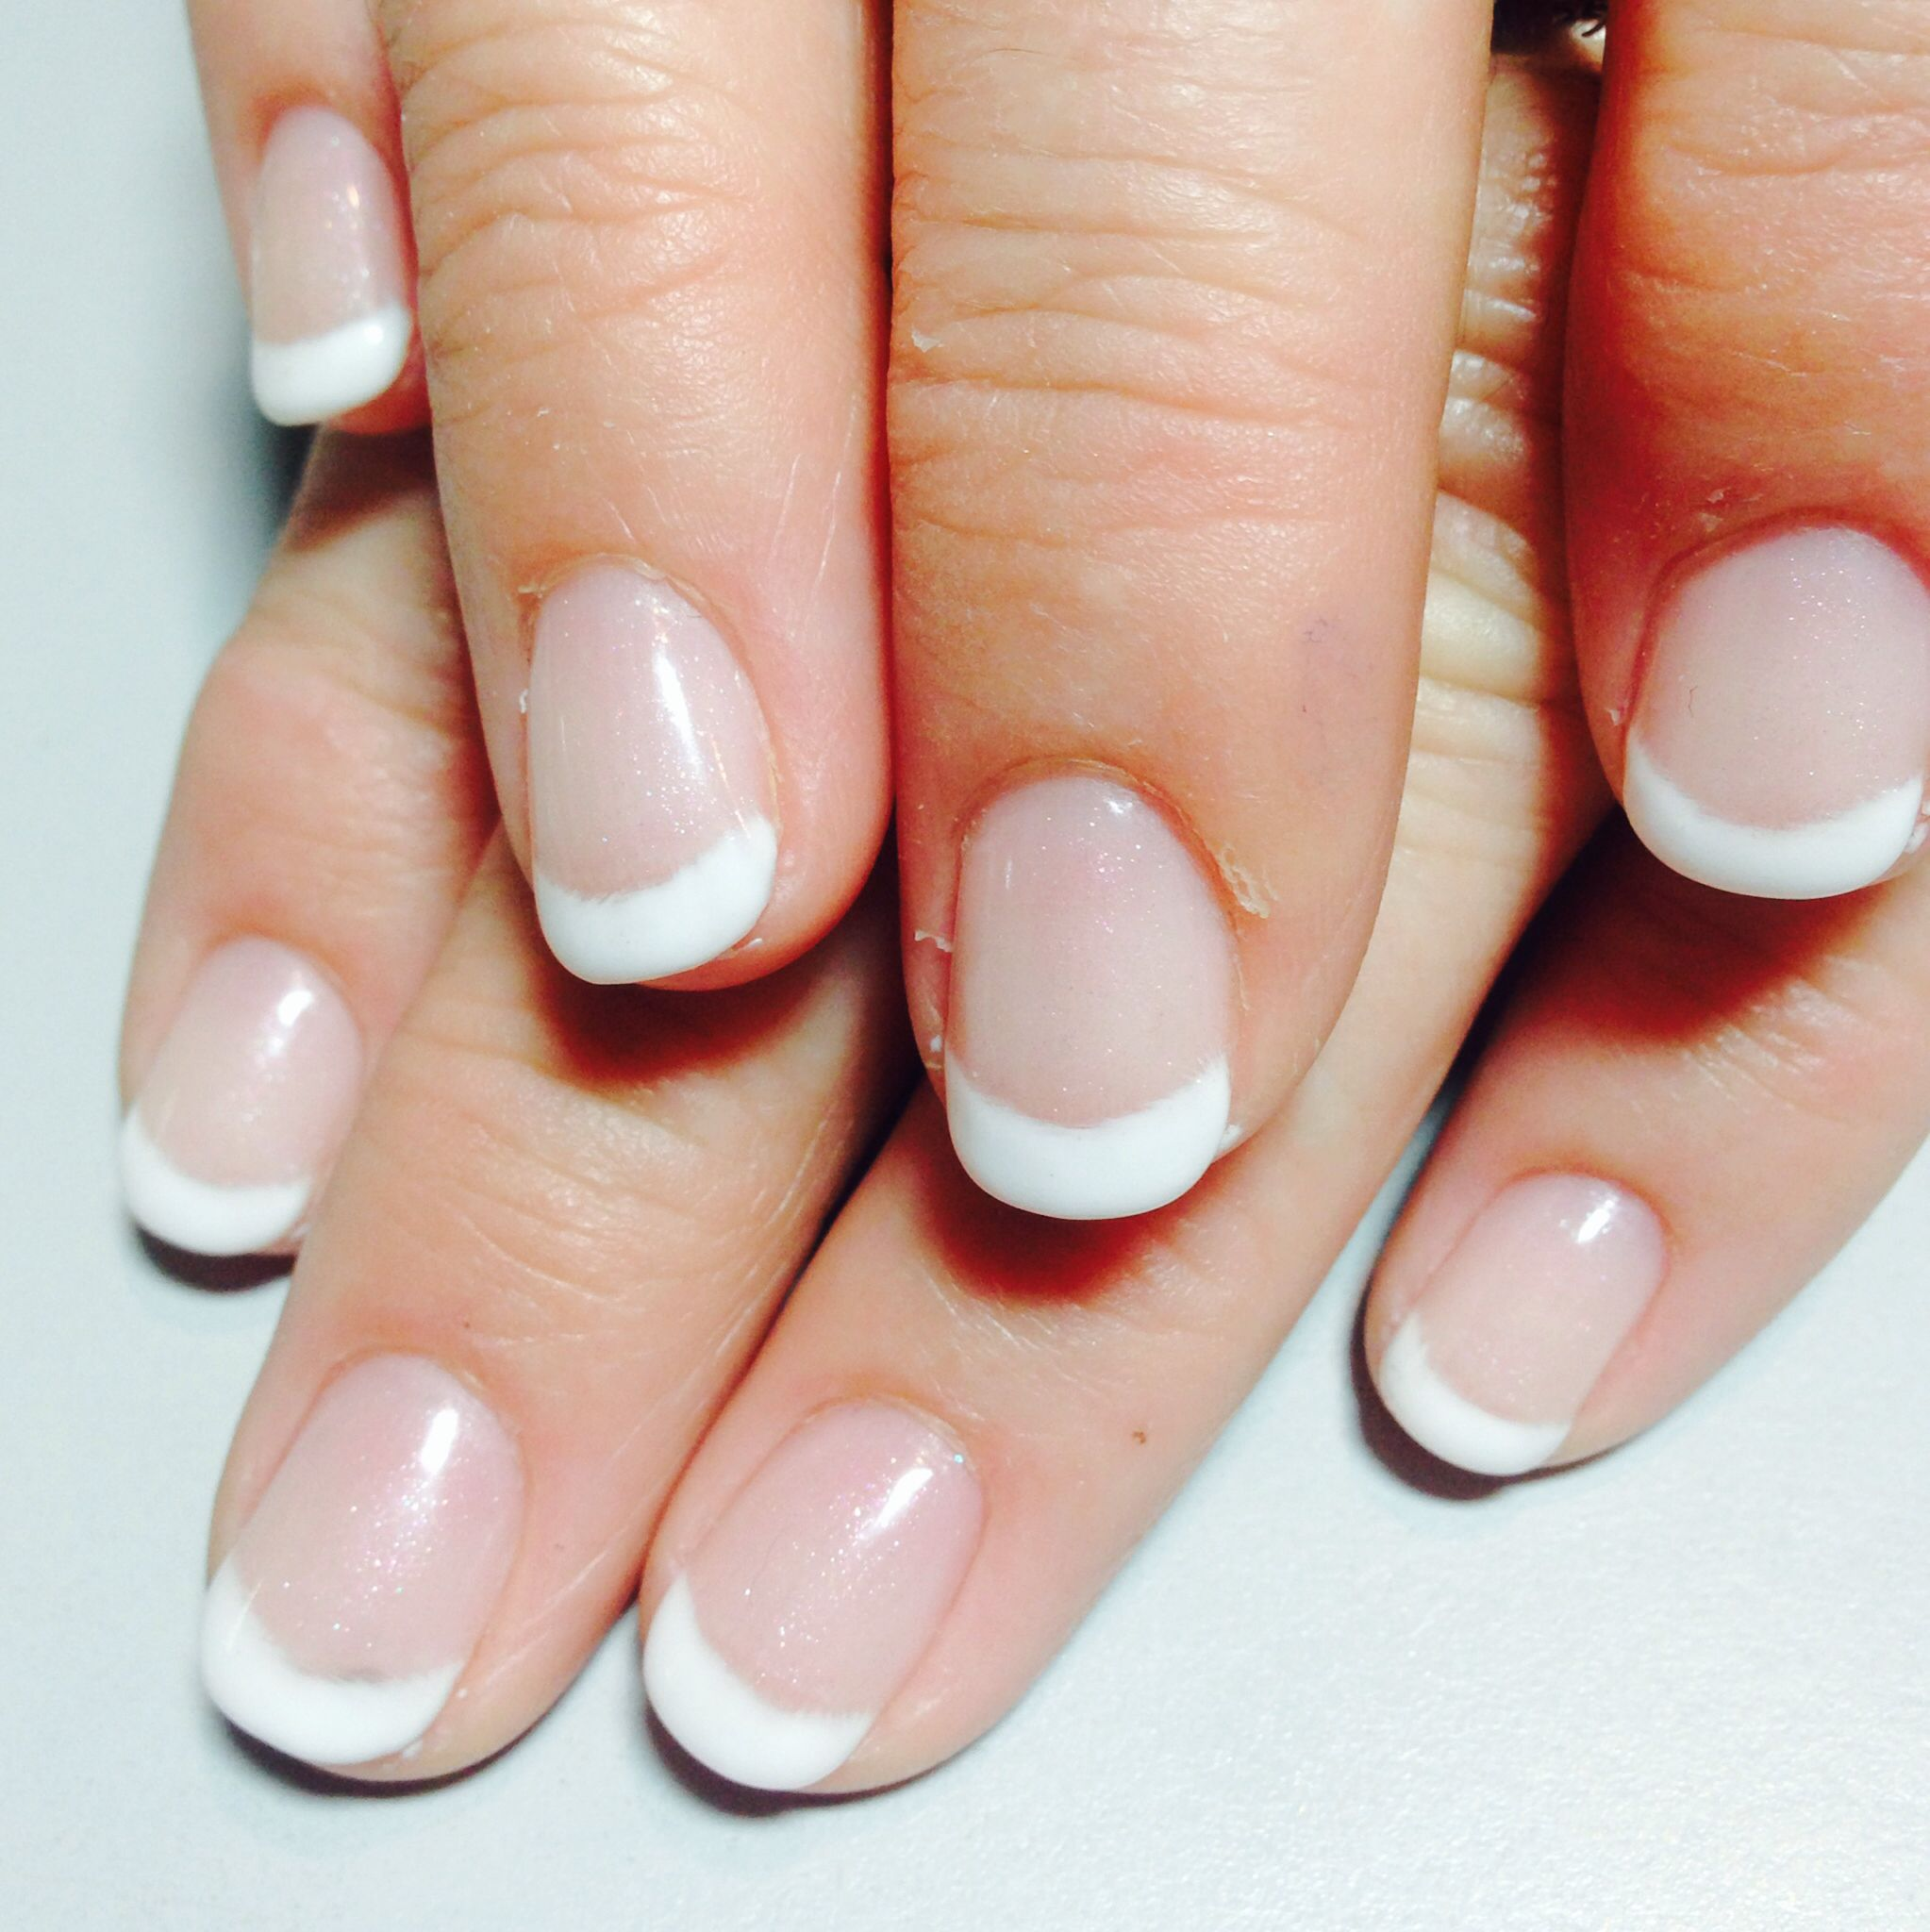 Short Rounded French Nails Wedding Nails French French Tip Acrylic Nails French Tip Nails